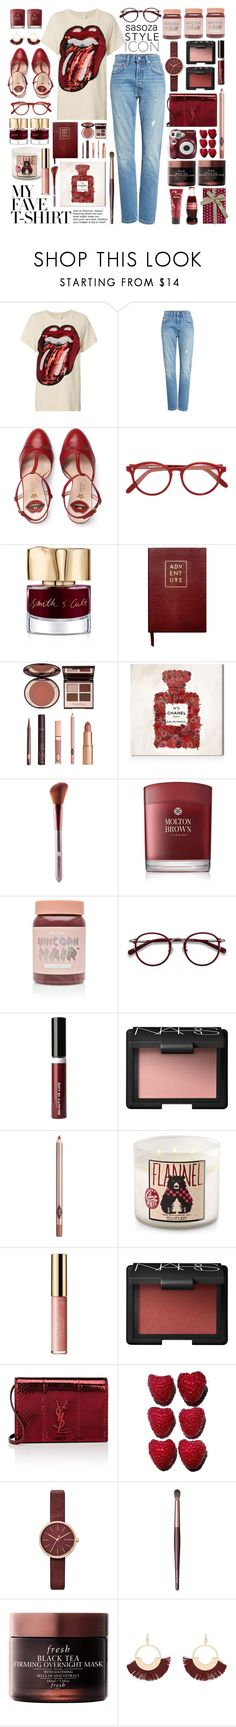 """OOTD by Sasoza"" by sasooza ❤ liked on Polyvore featuring MadeWorn, Levi's, Gucci, Cutler and Gross, Smith & Cult, Sloane Stationery, Charlotte Tilbury, Oliver Gal Artist Co., Molton Brown and Lime Crime"